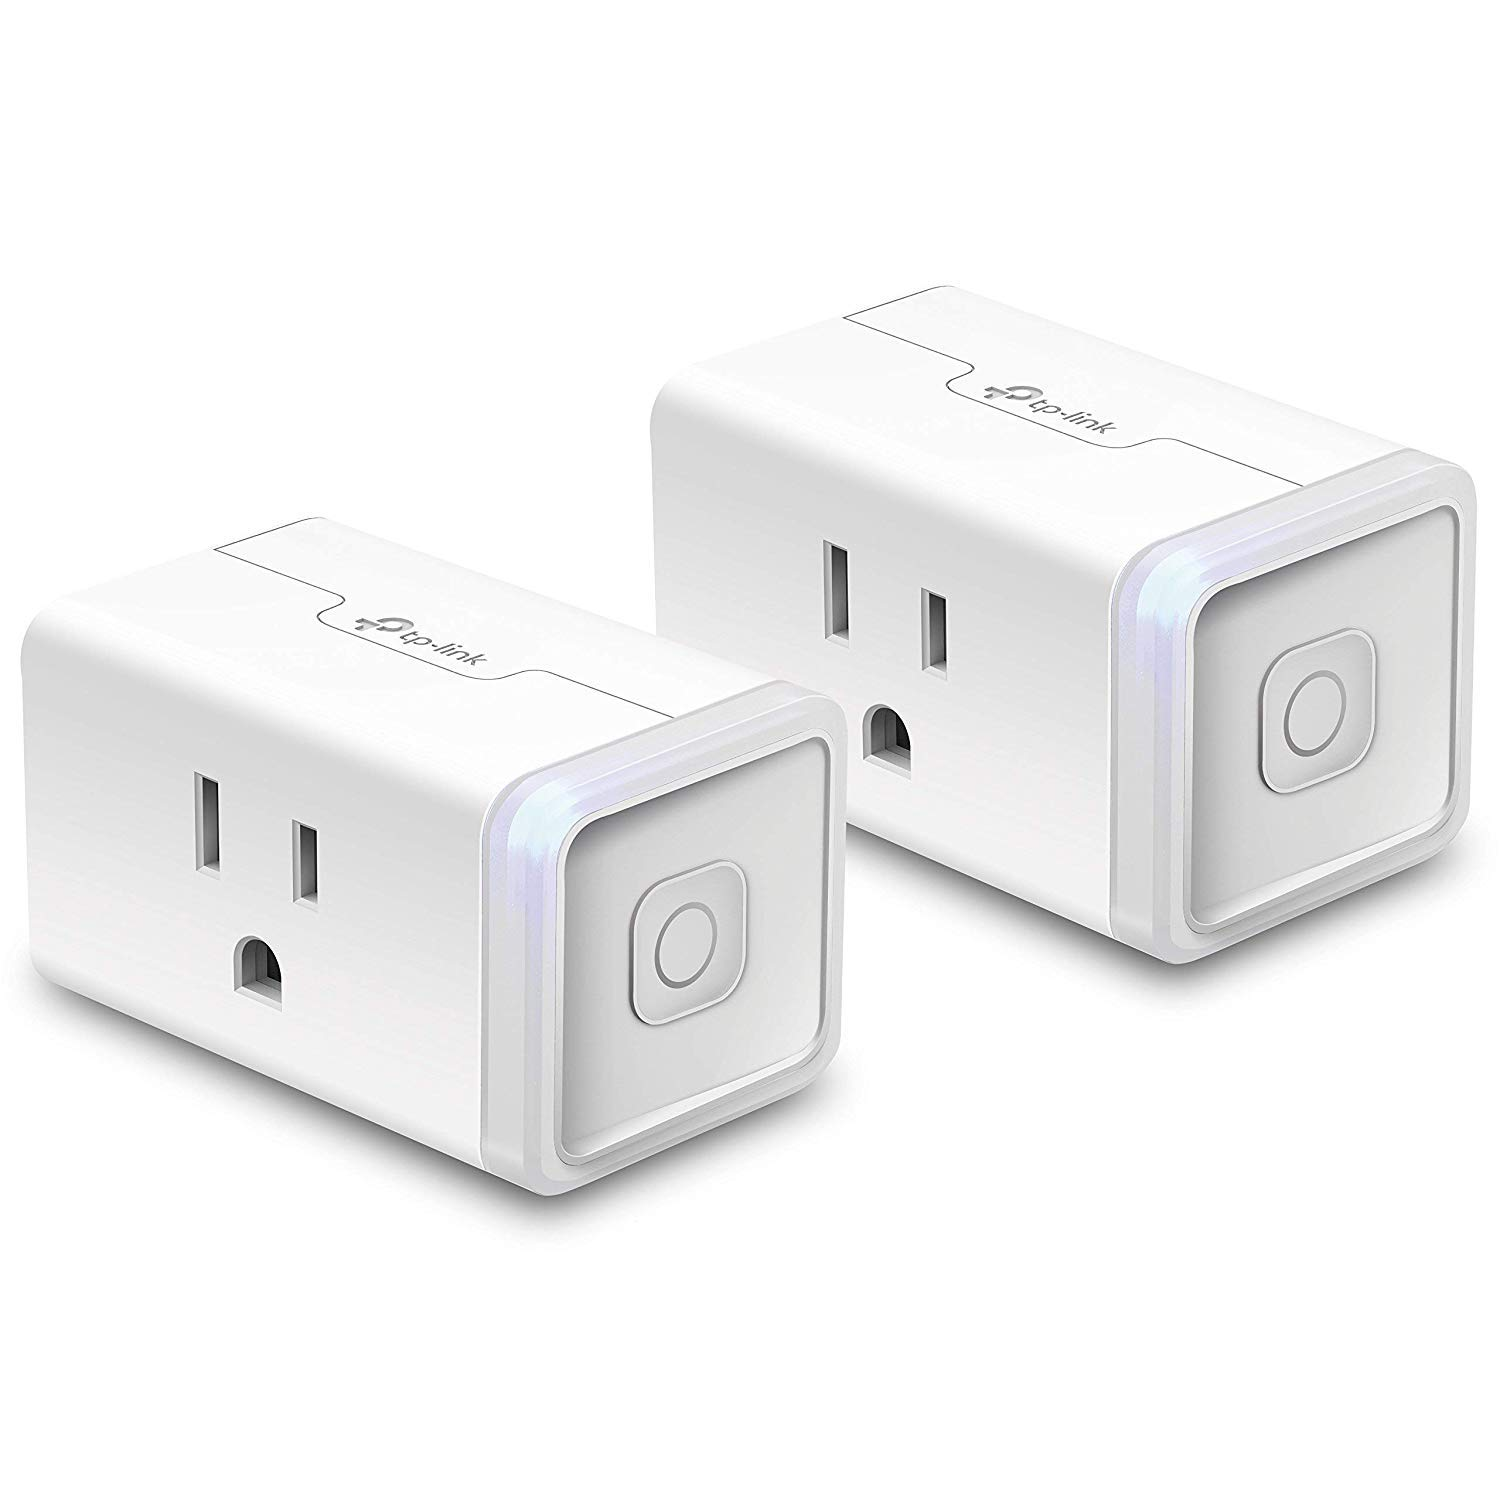 TP-Link HS105 KIT Mini WiFi Smart Plug No Hub Required, Compatible with Alexa Echo & Google Assistant, 2 Pack, White, 2 Wi-fi (Certified Refurbished)